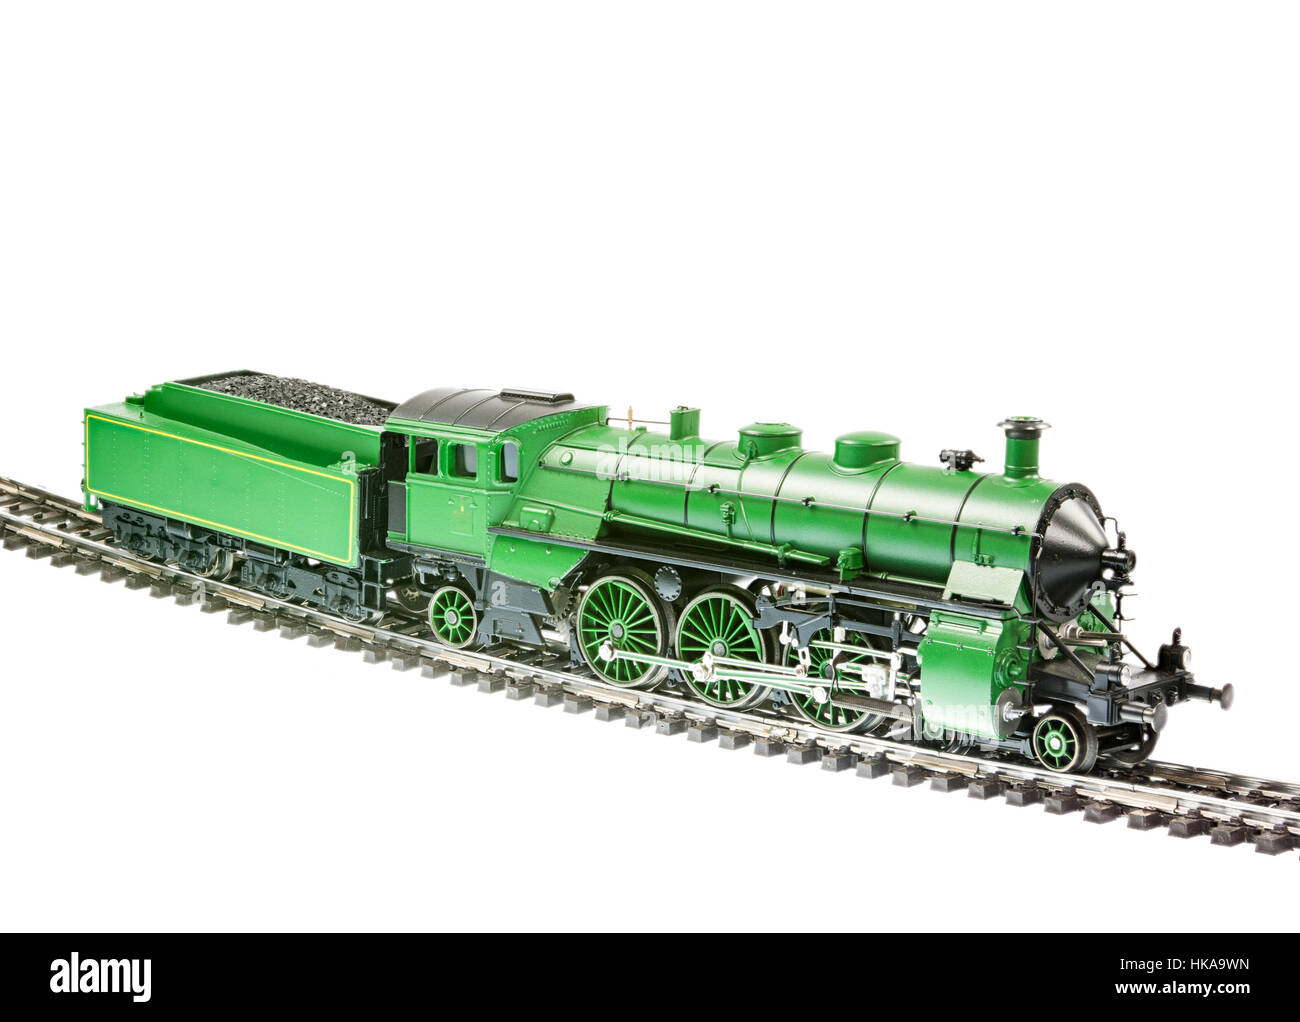 Isolated toy train with a steam engine locomotive - Stock Image